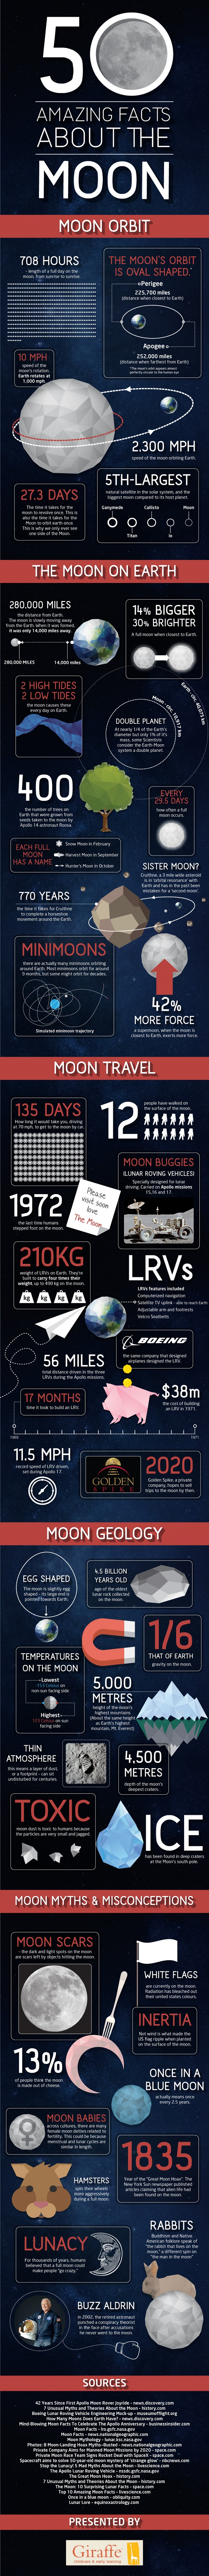 50-facts-about-the-moon-2